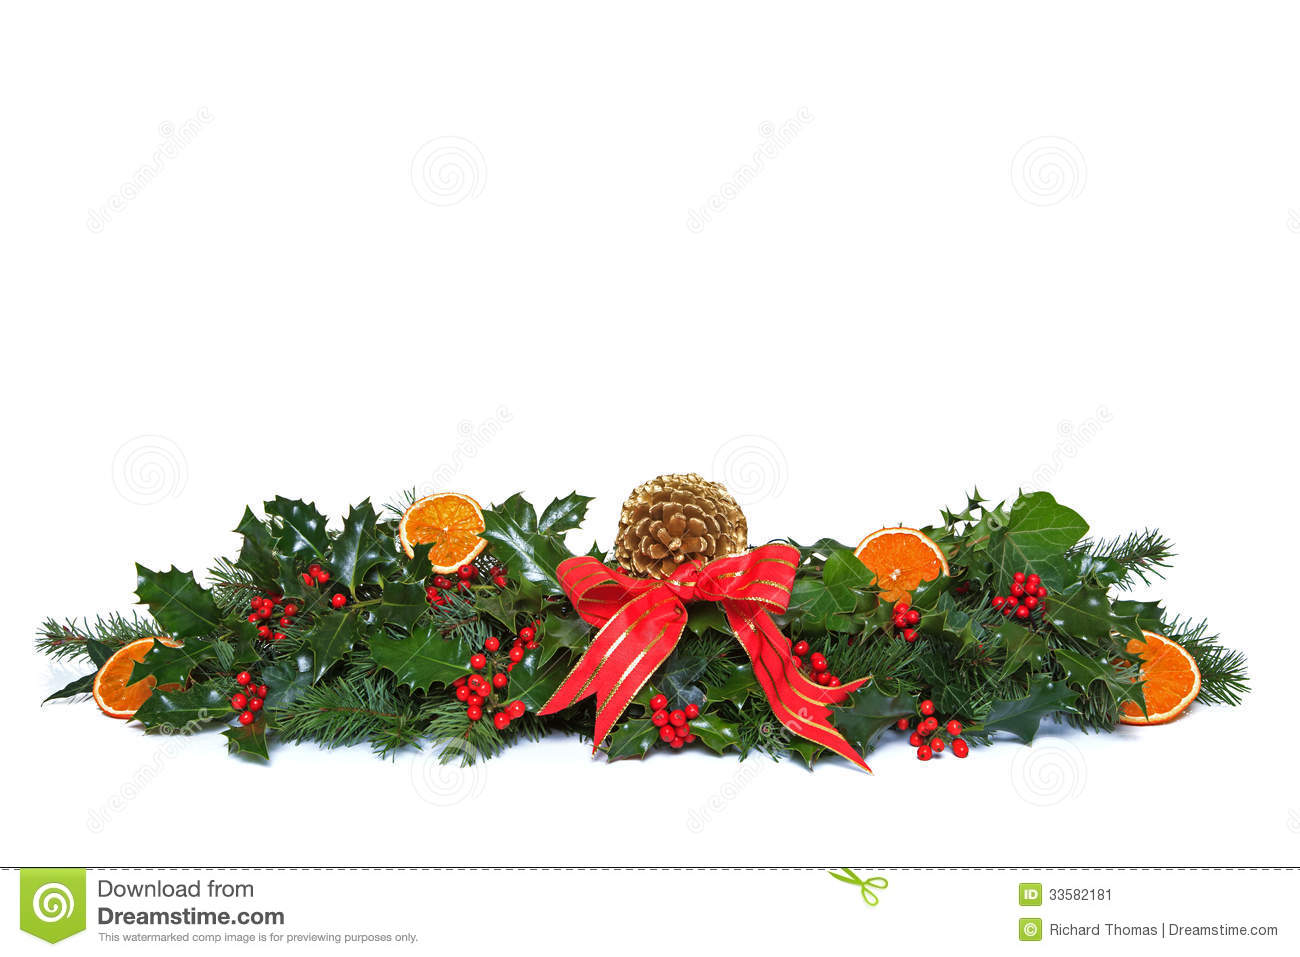 traditional Christmas garland made from fresh holly with red berries ...: www.dreamstime.com/stock-image-holly-dried-orange-christmas-garland...